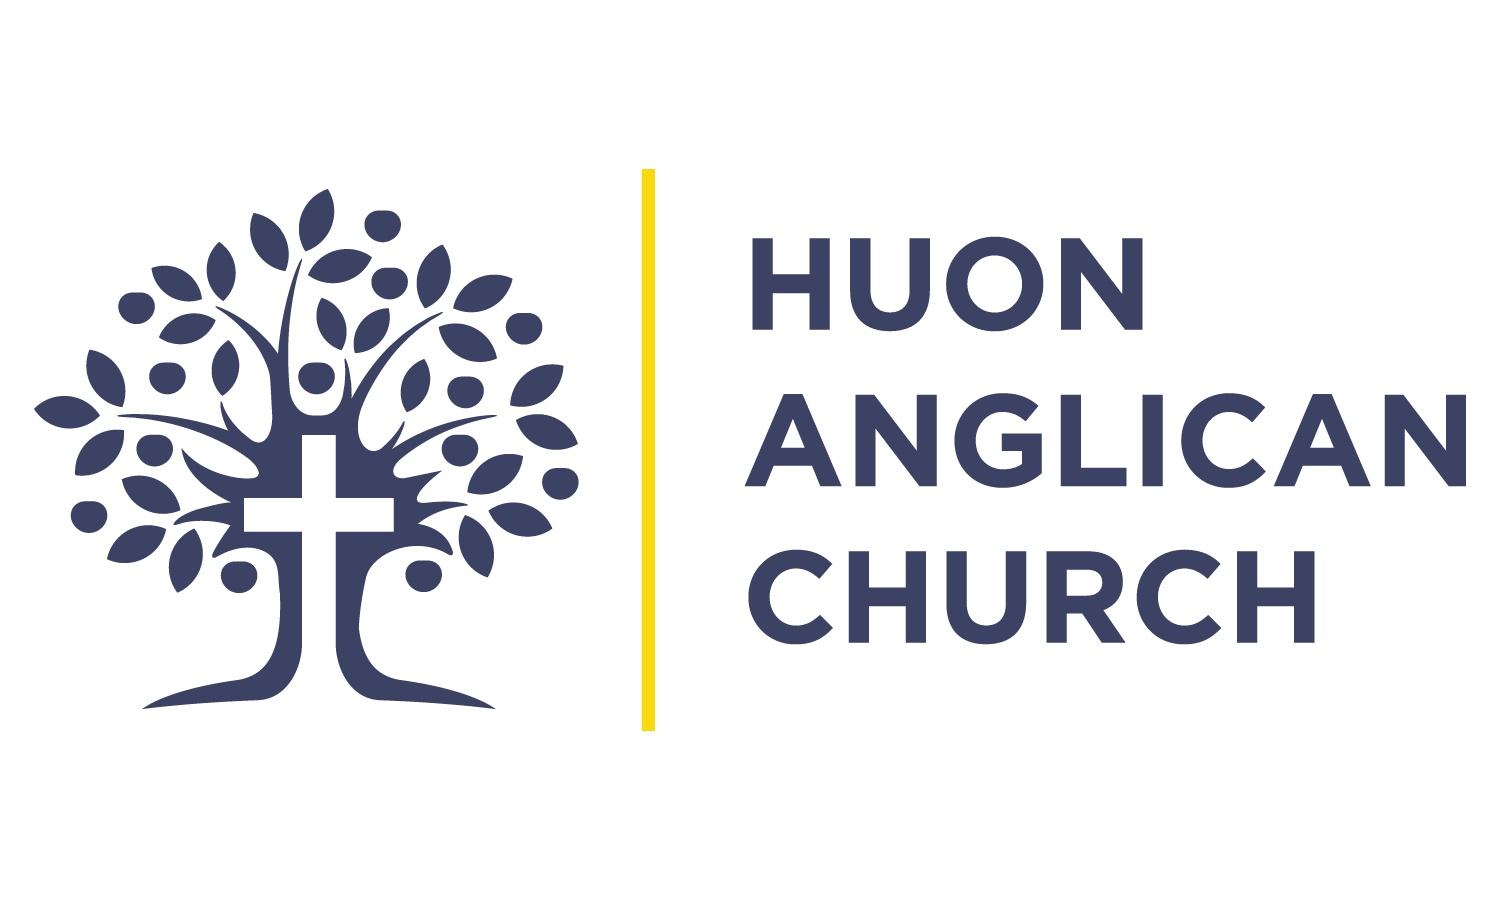 Huon Anglican Church